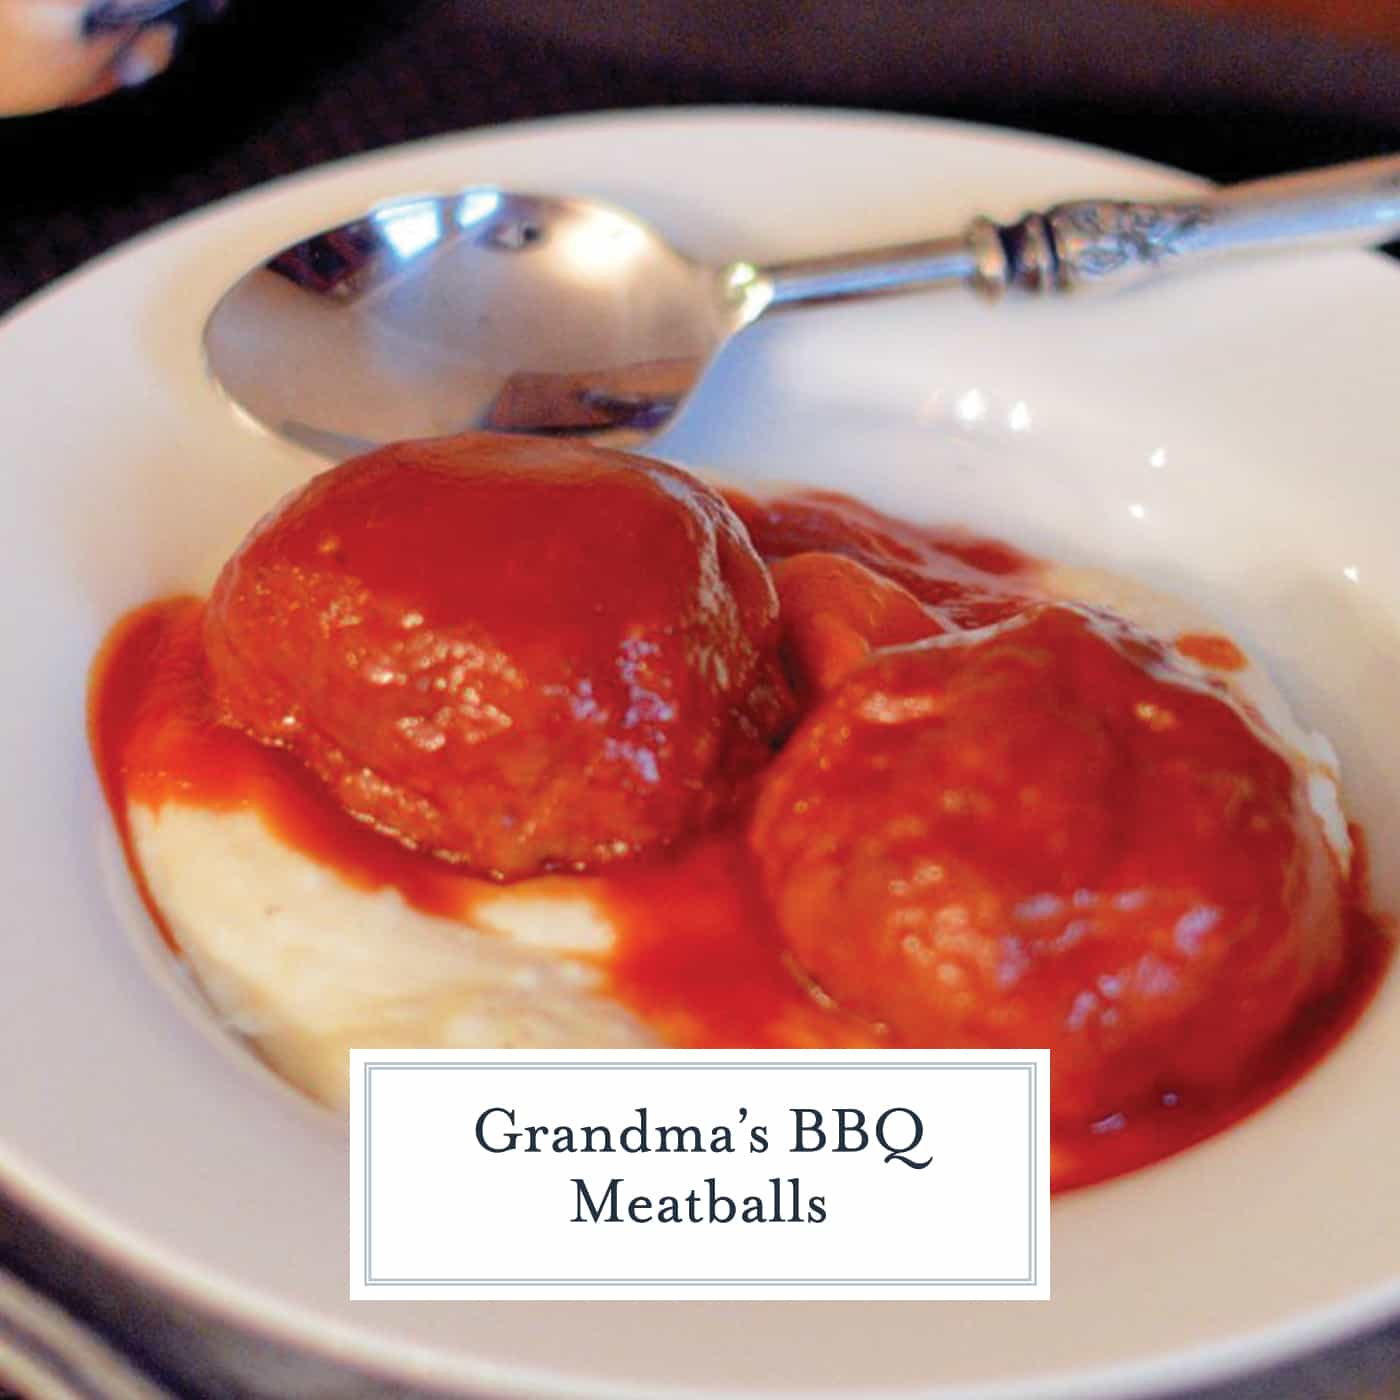 Grandma's BBQ Meatballs are a tasty and unique take on a classic. Perfect for game day, as an appetizer, or as a main course. #grandmasbbqmeatballs #bbqsauce #meatballs www.savoryexperiments.com